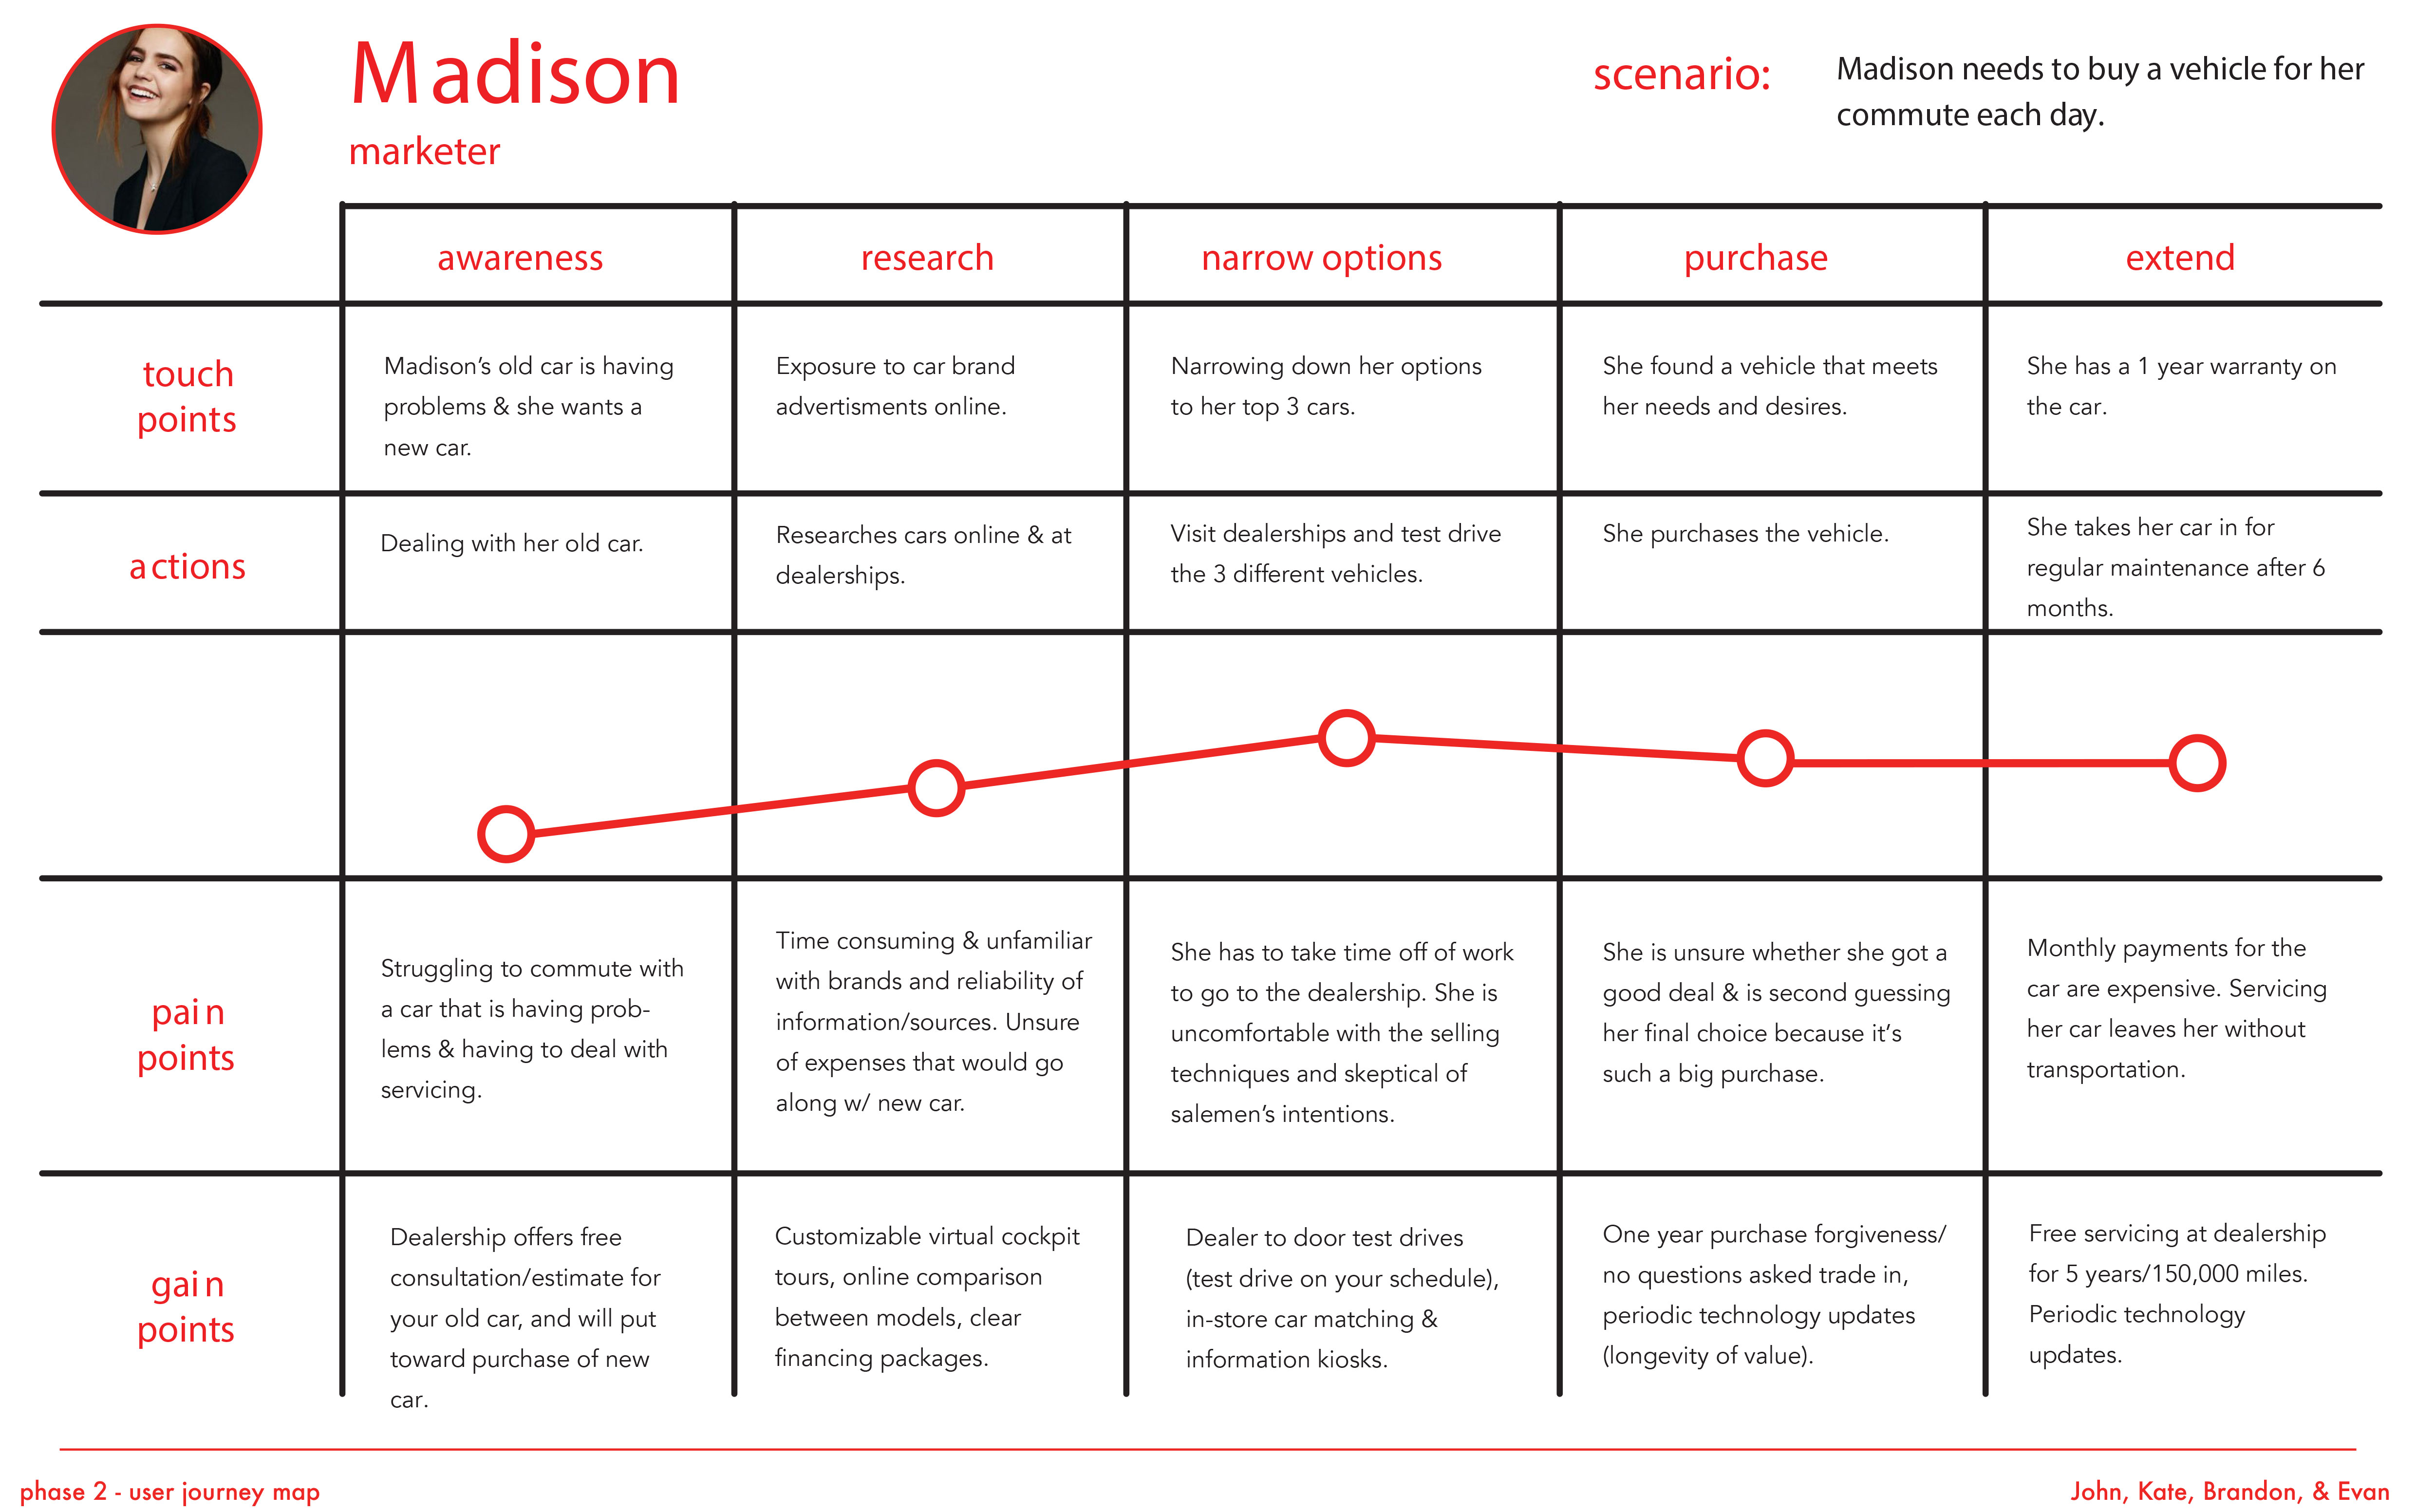 user journey map for Madison